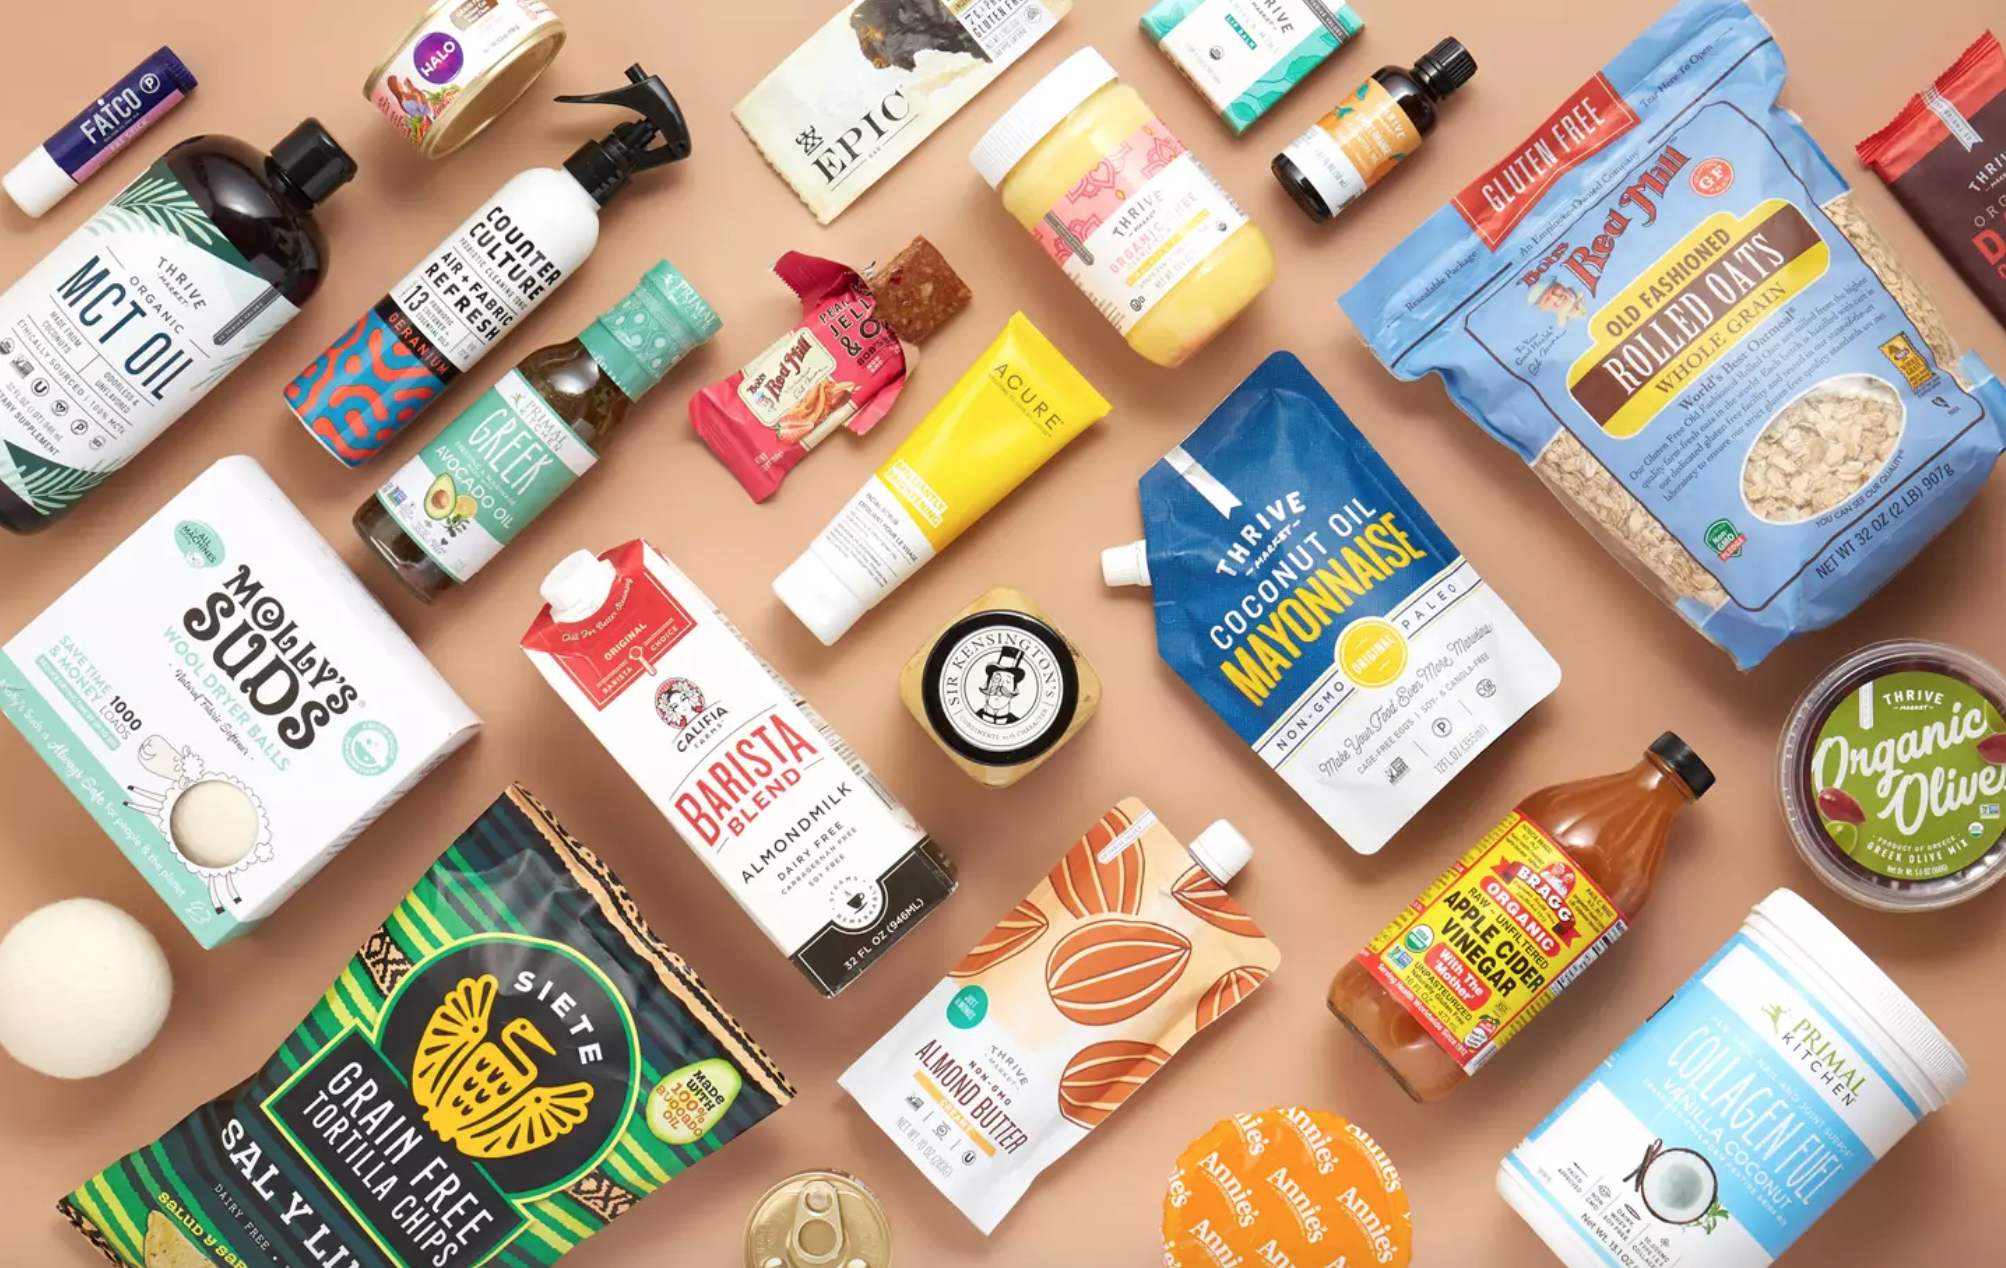 A flat-lay featuring numerous healthy products available from Thrive Market.